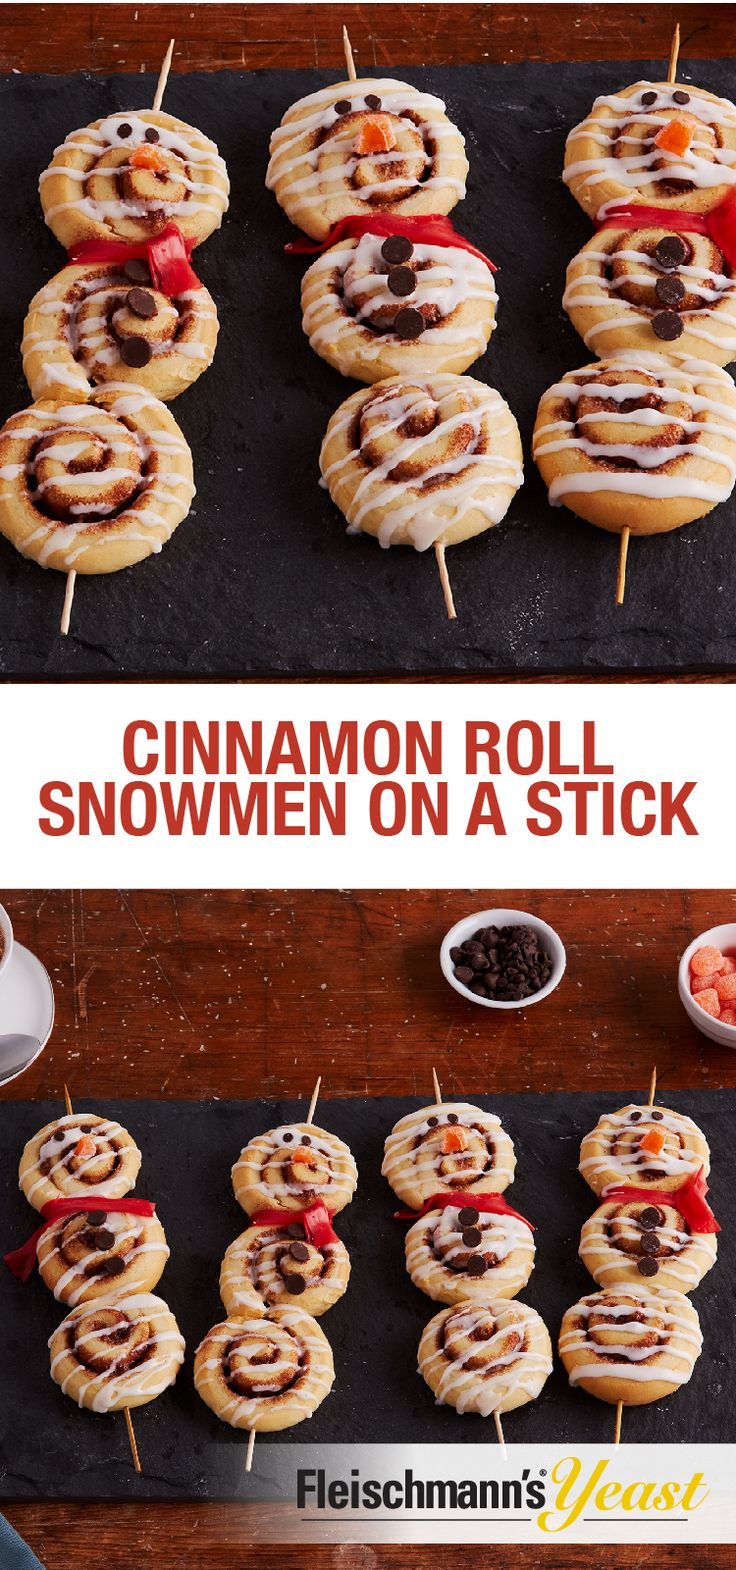 Snowed in for the afternoon? This recipe for Cinnamon Roll Snowmen on a Stick are a perfect snow day activity for kids. They'll love to decorate them with their favorite treats!